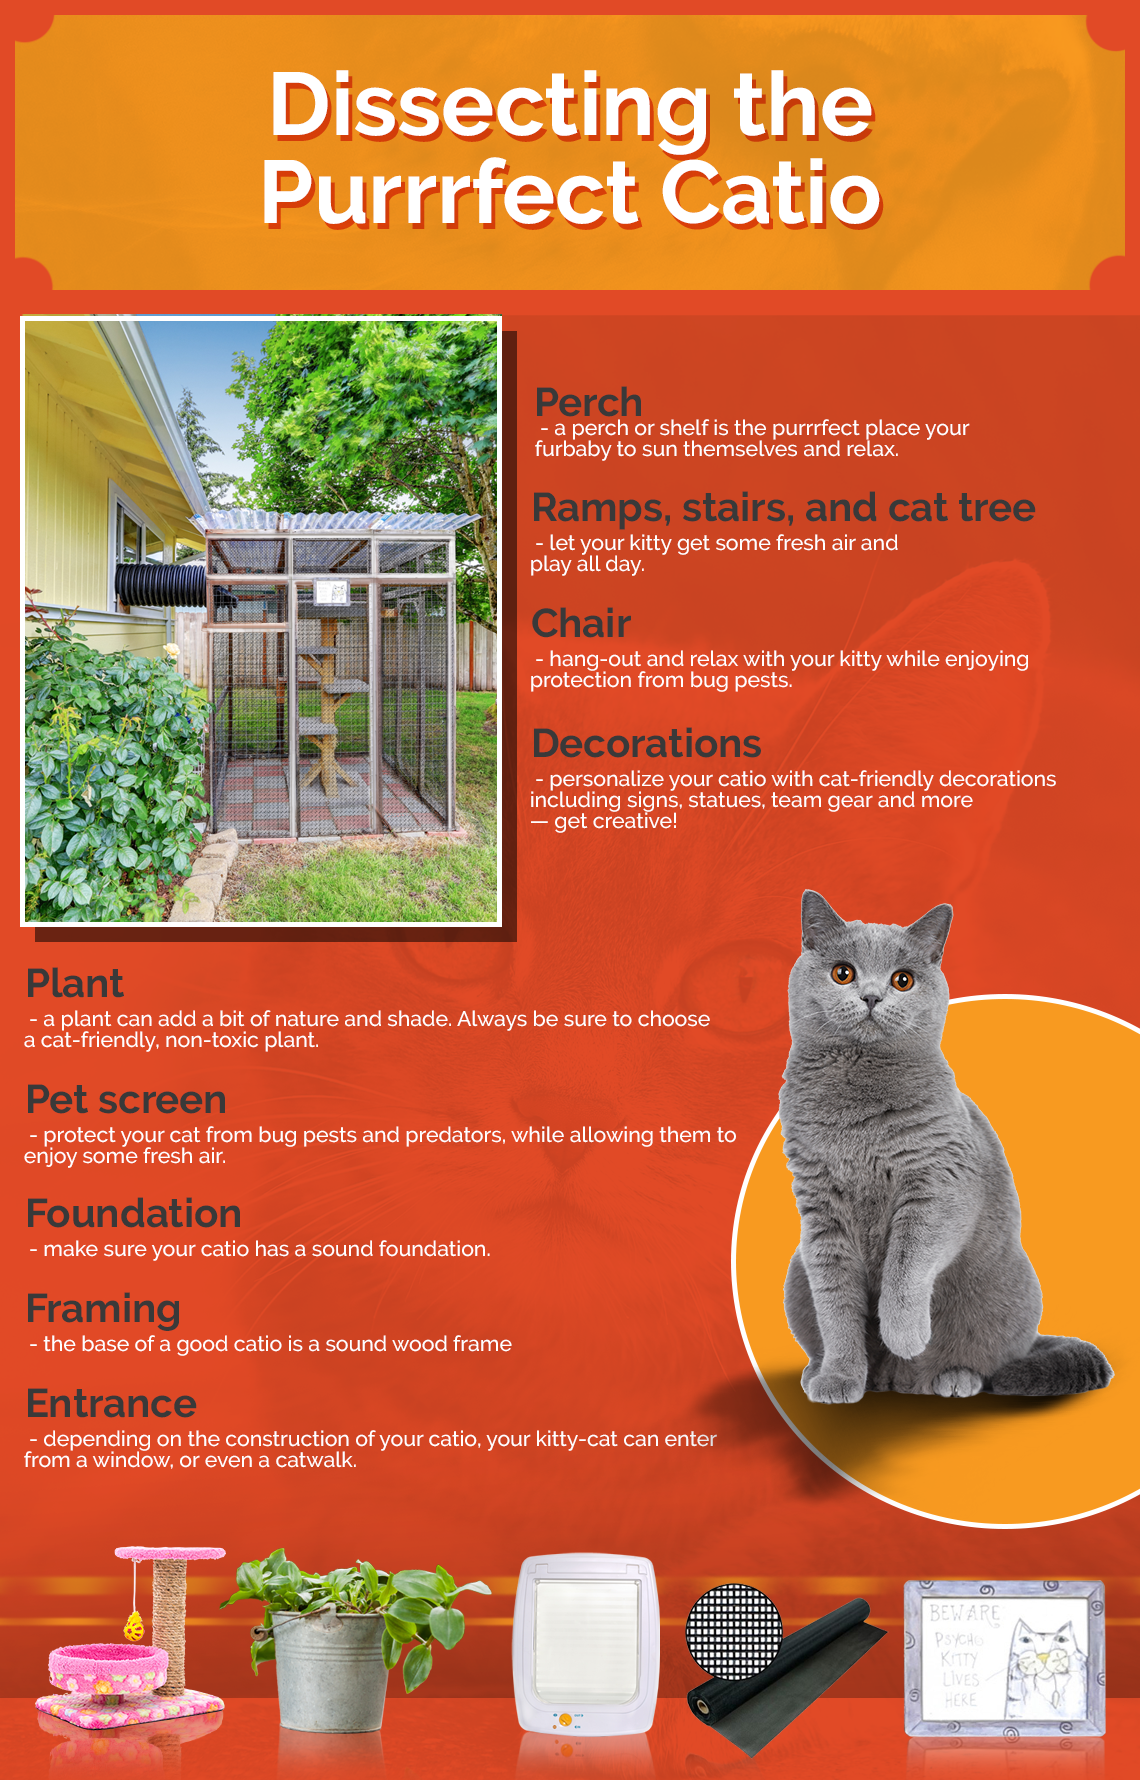 dissecting-the-purrrfect-catio-rev-2.png